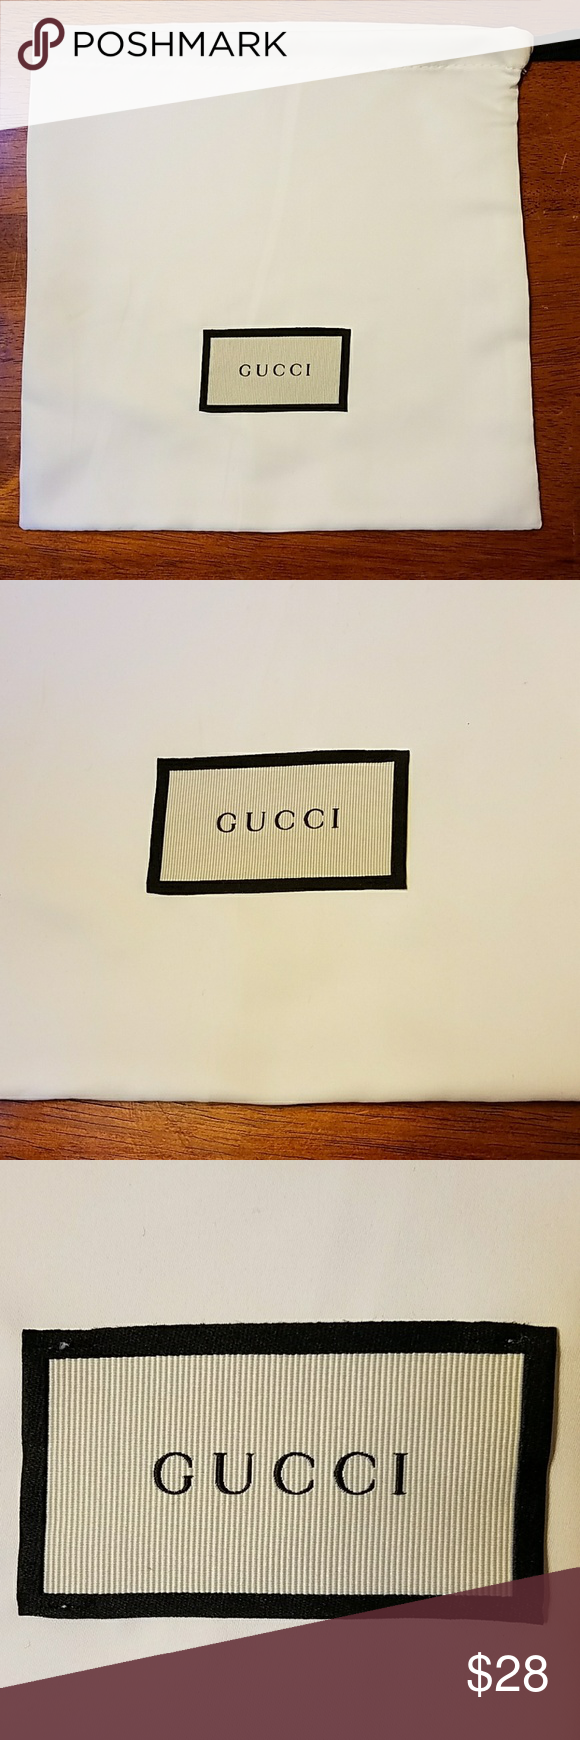 d79aa534fe6c Gucci Belt Dust Bag White Satin Gucci White Satin Dust Bag Small size for  belt, wallet, mini crossbody, etc, 9.5x9.5 Authentic and brand new Gucci ...